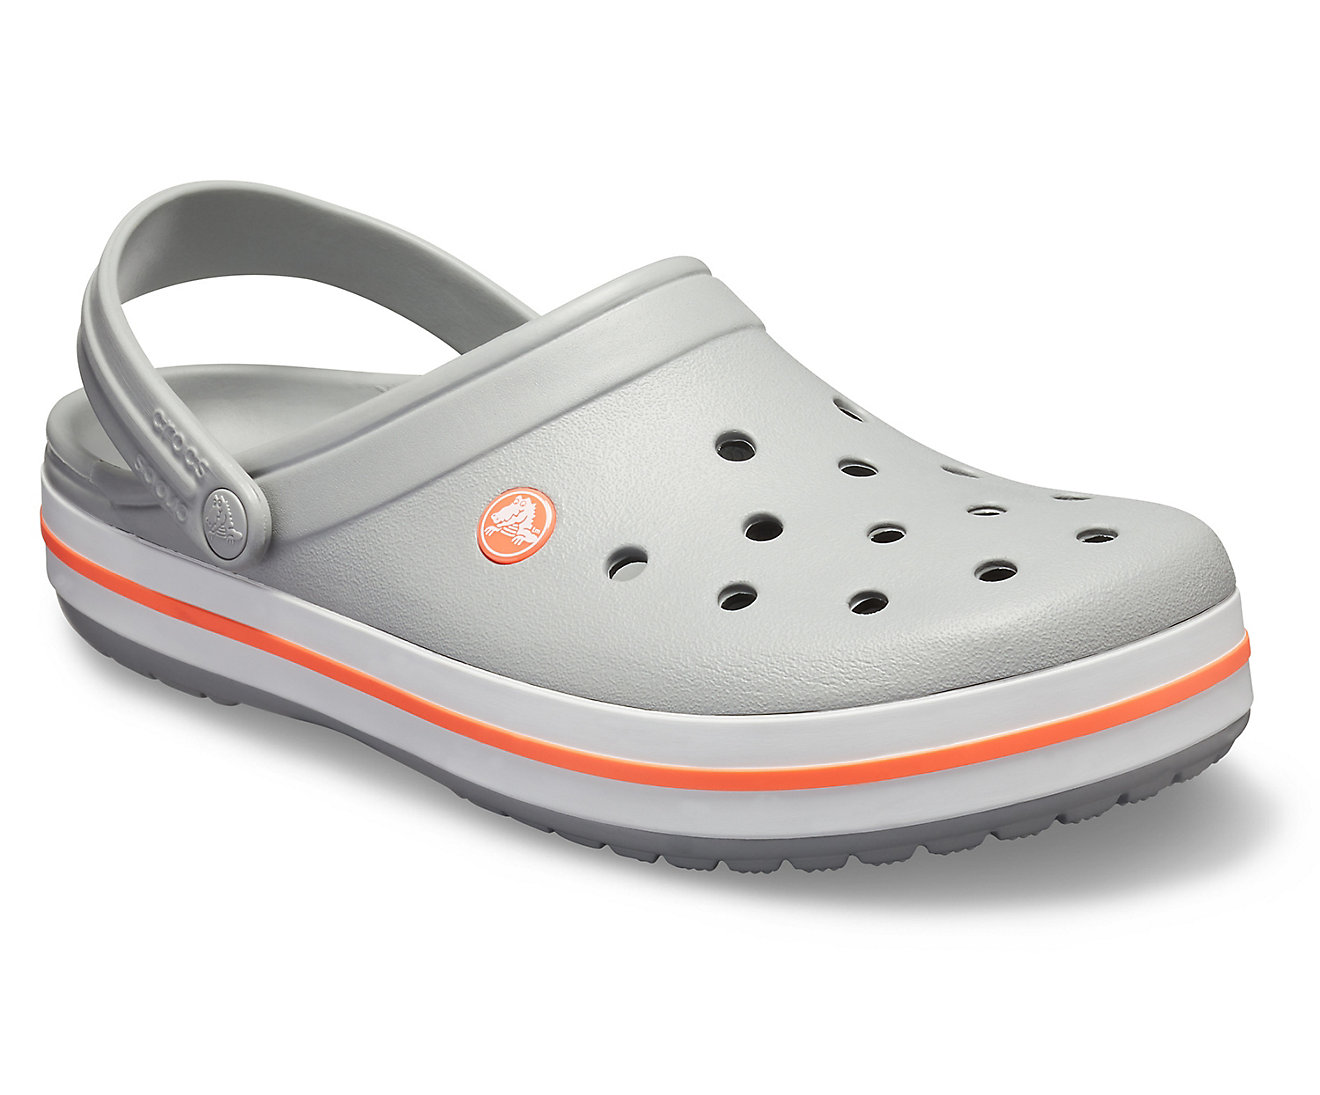 Crocs šedé unisex pantofle Crocband Light Grey/Bright Coral